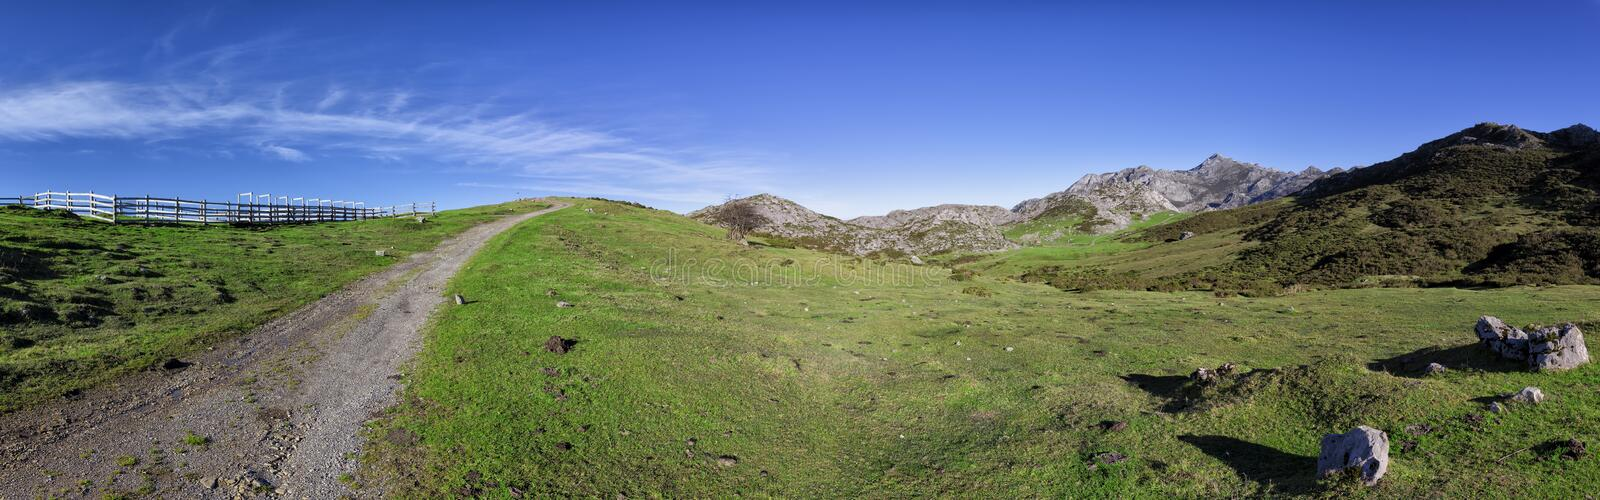 Panoramic photograph of a landscape of the Picos de Europa National Park. In Spain royalty free stock photography